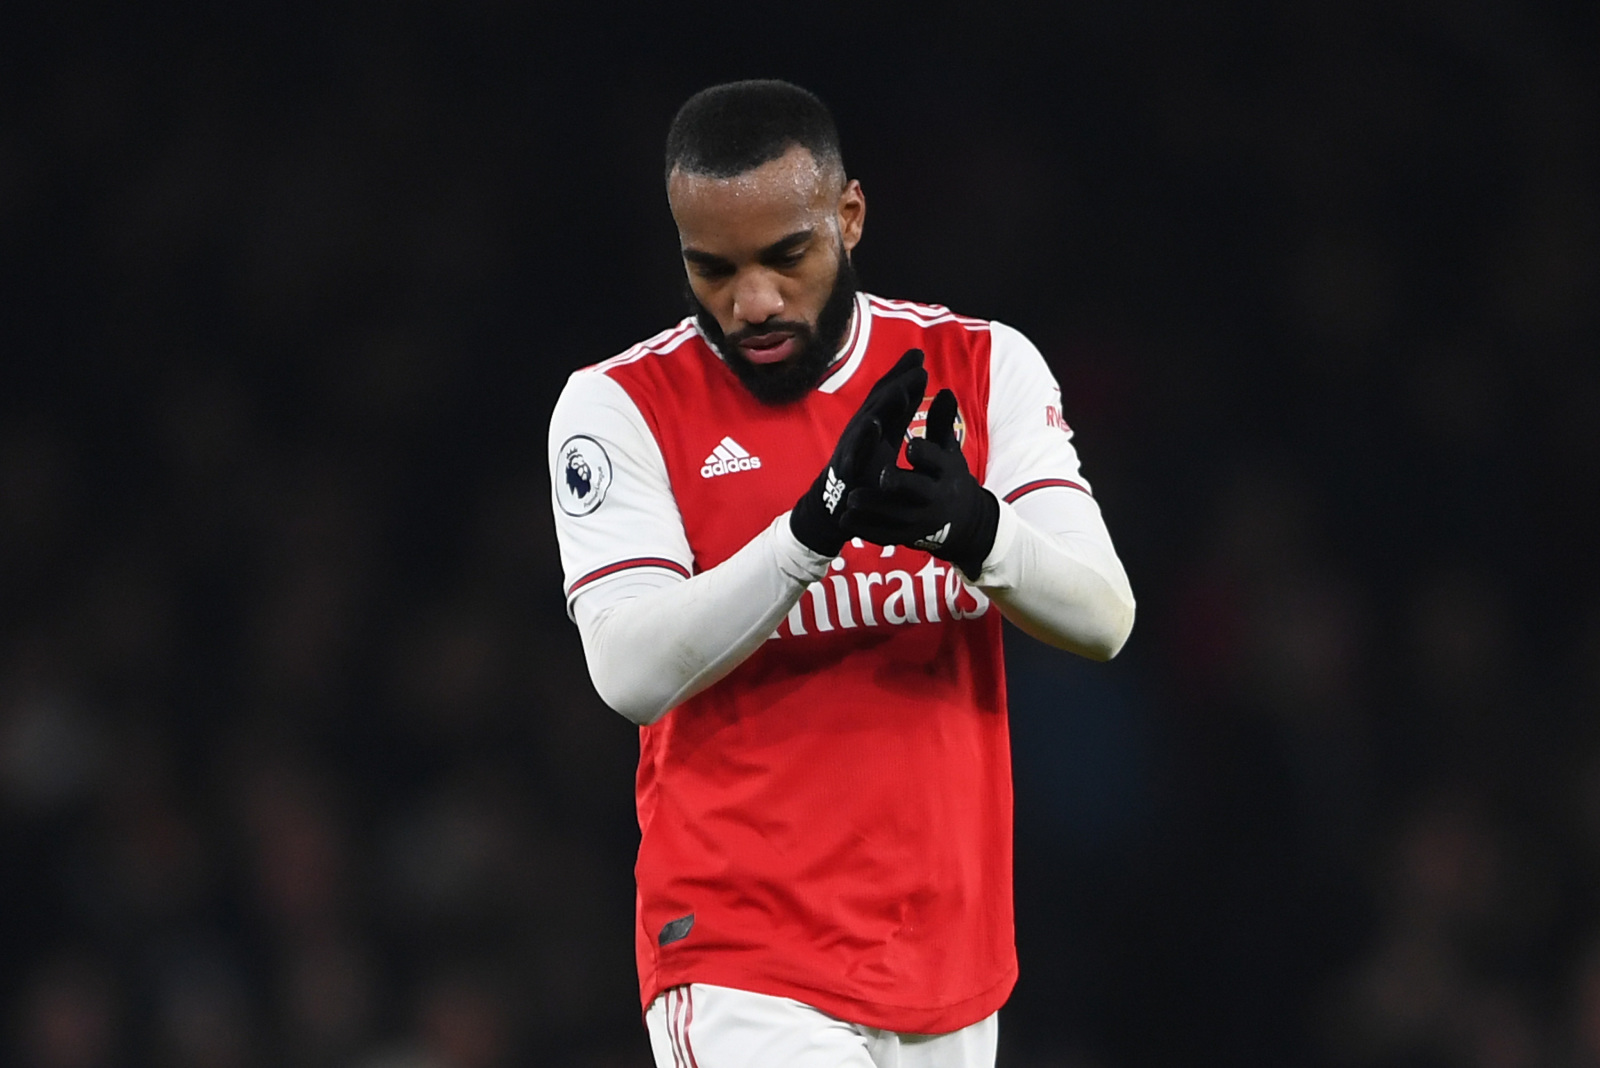 Arsenal: Alexandre Lacazette exit about more than happiness